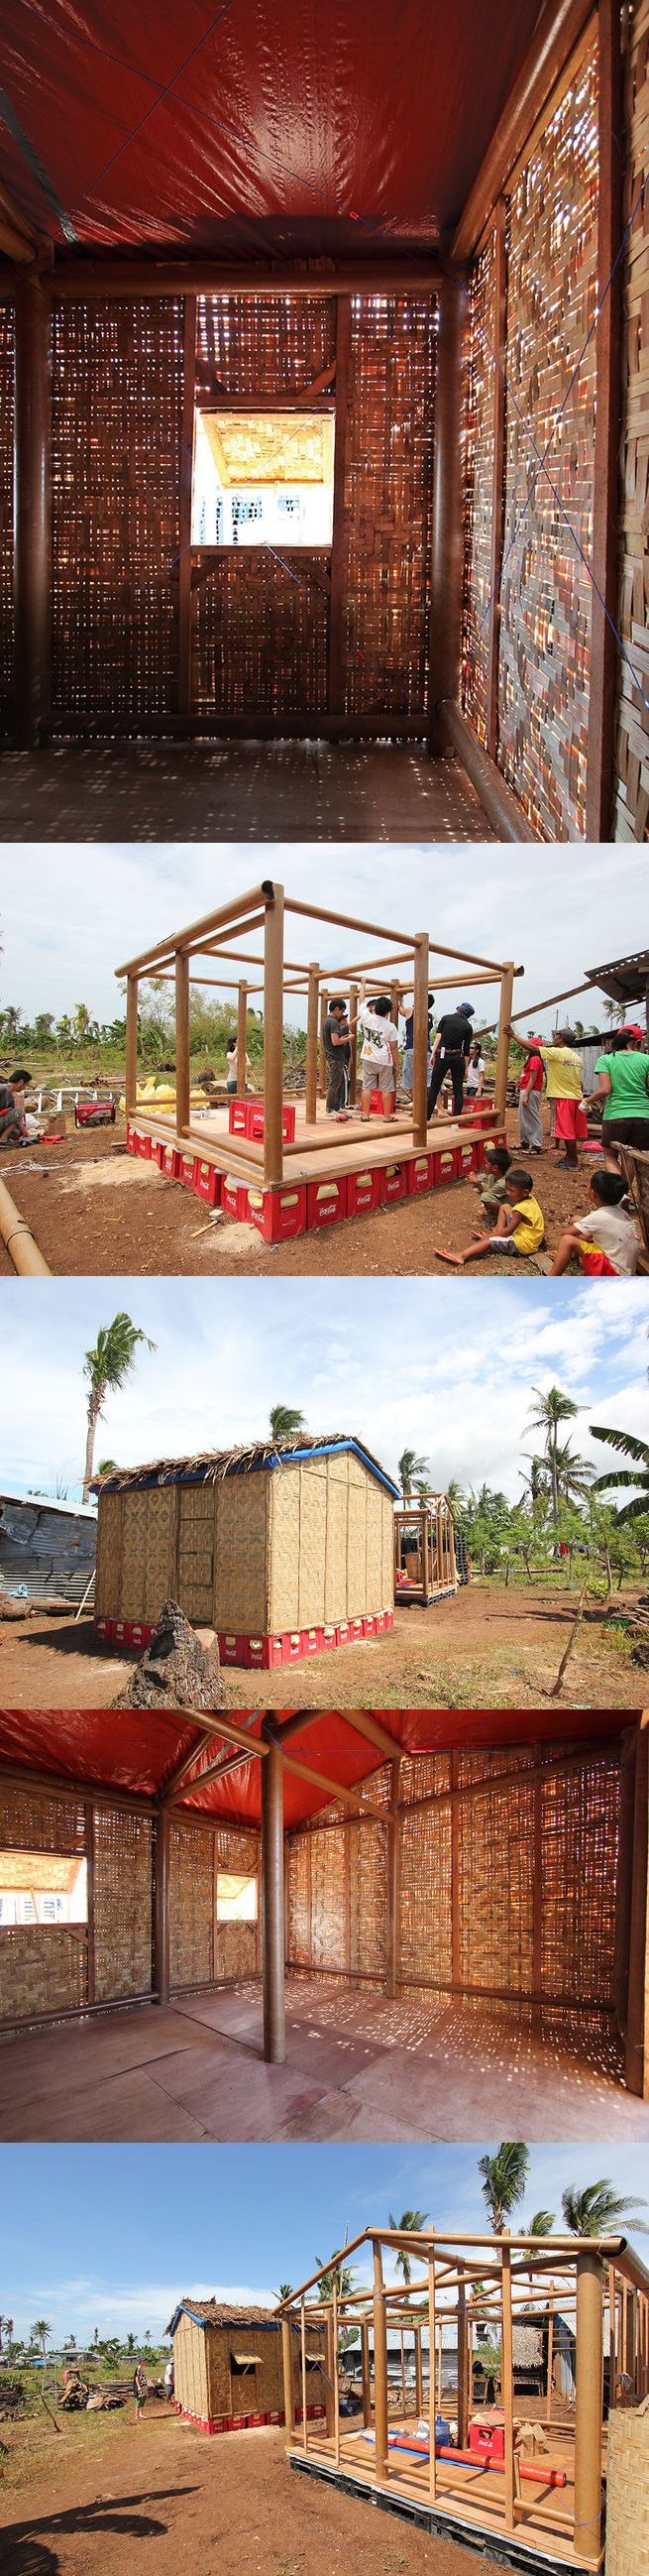 Architect Shigeru Ban has designed temporary shelters for disaster-stricken areas such as Japan, Turkey, New Zealand, India, and the Phillipines. http://www.dwell.com/modern-world/article/shigeru-ban-designs-temporary-easy-build-shelters-disaster-prone-areas